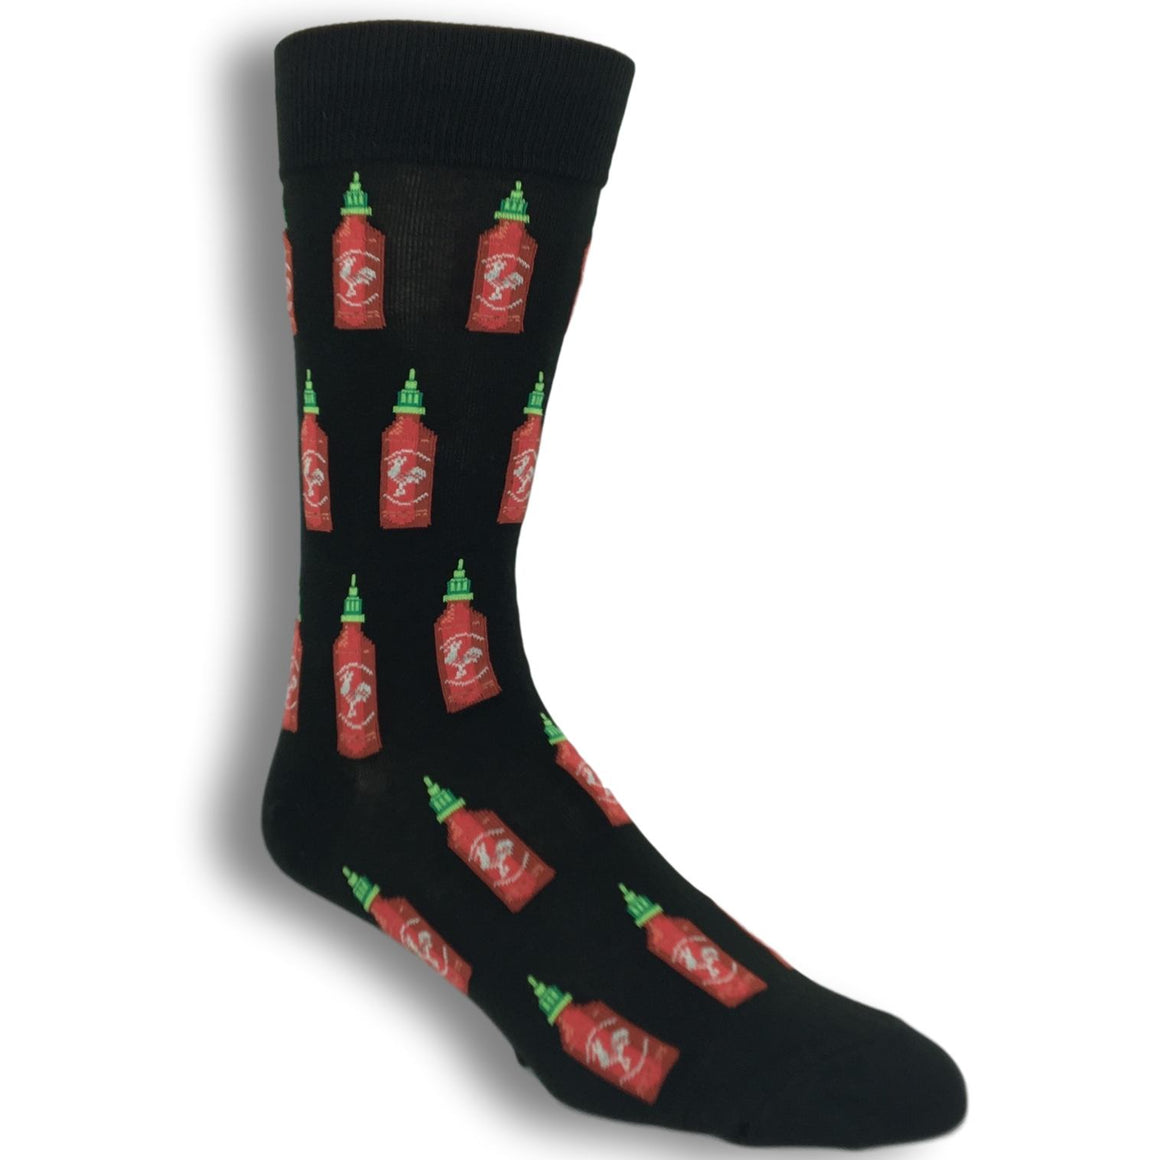 Hot Sauce Socks In Black By Hot Sox